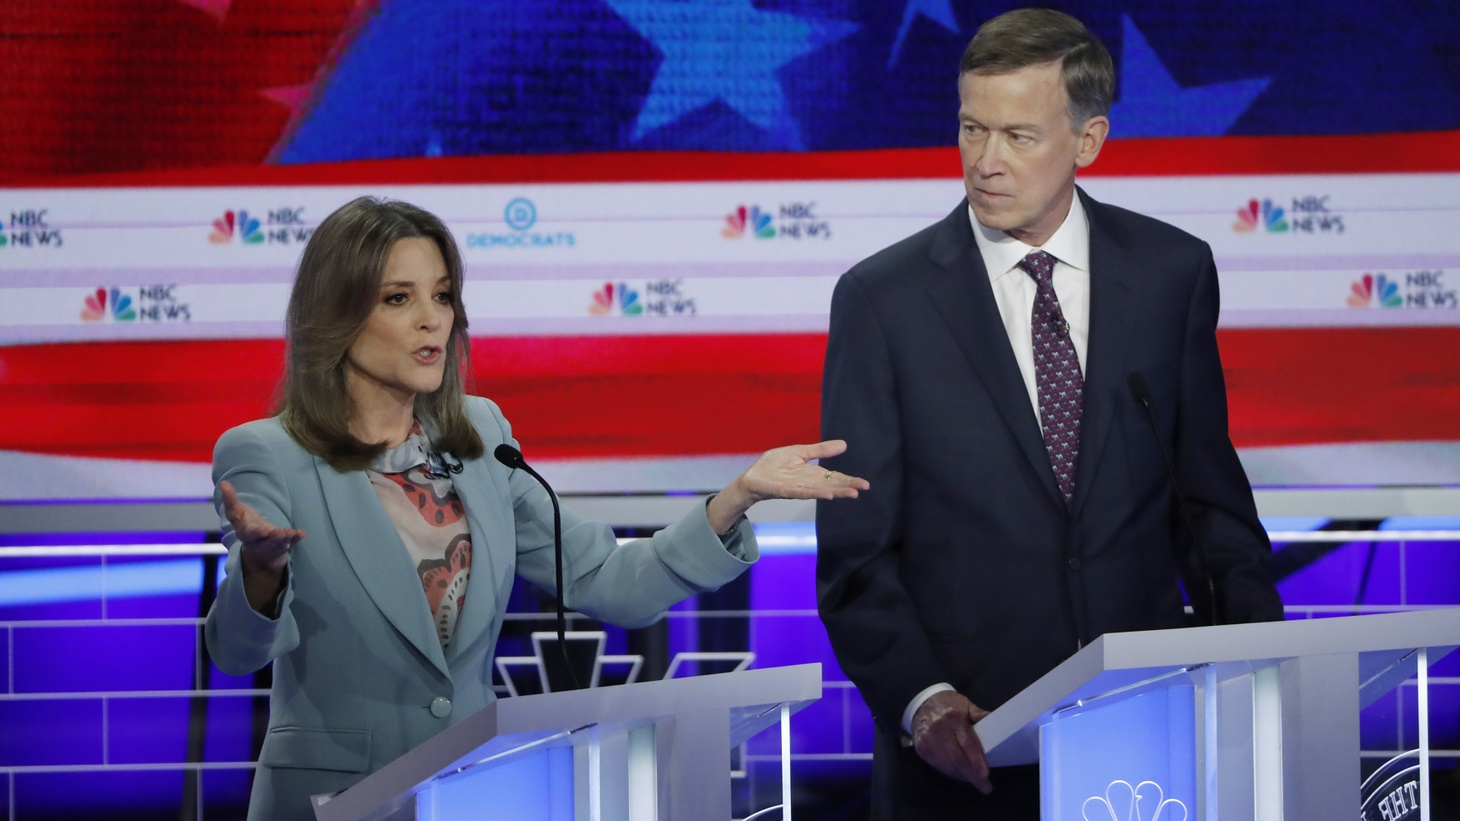 Author Marianne Williamson and former Colorado Governor John Hickenlooper debate during the second night of the first U.S. Democratic presidential candidates 2020 election debate in Miami, Florida, U.S., June 27, 2019.